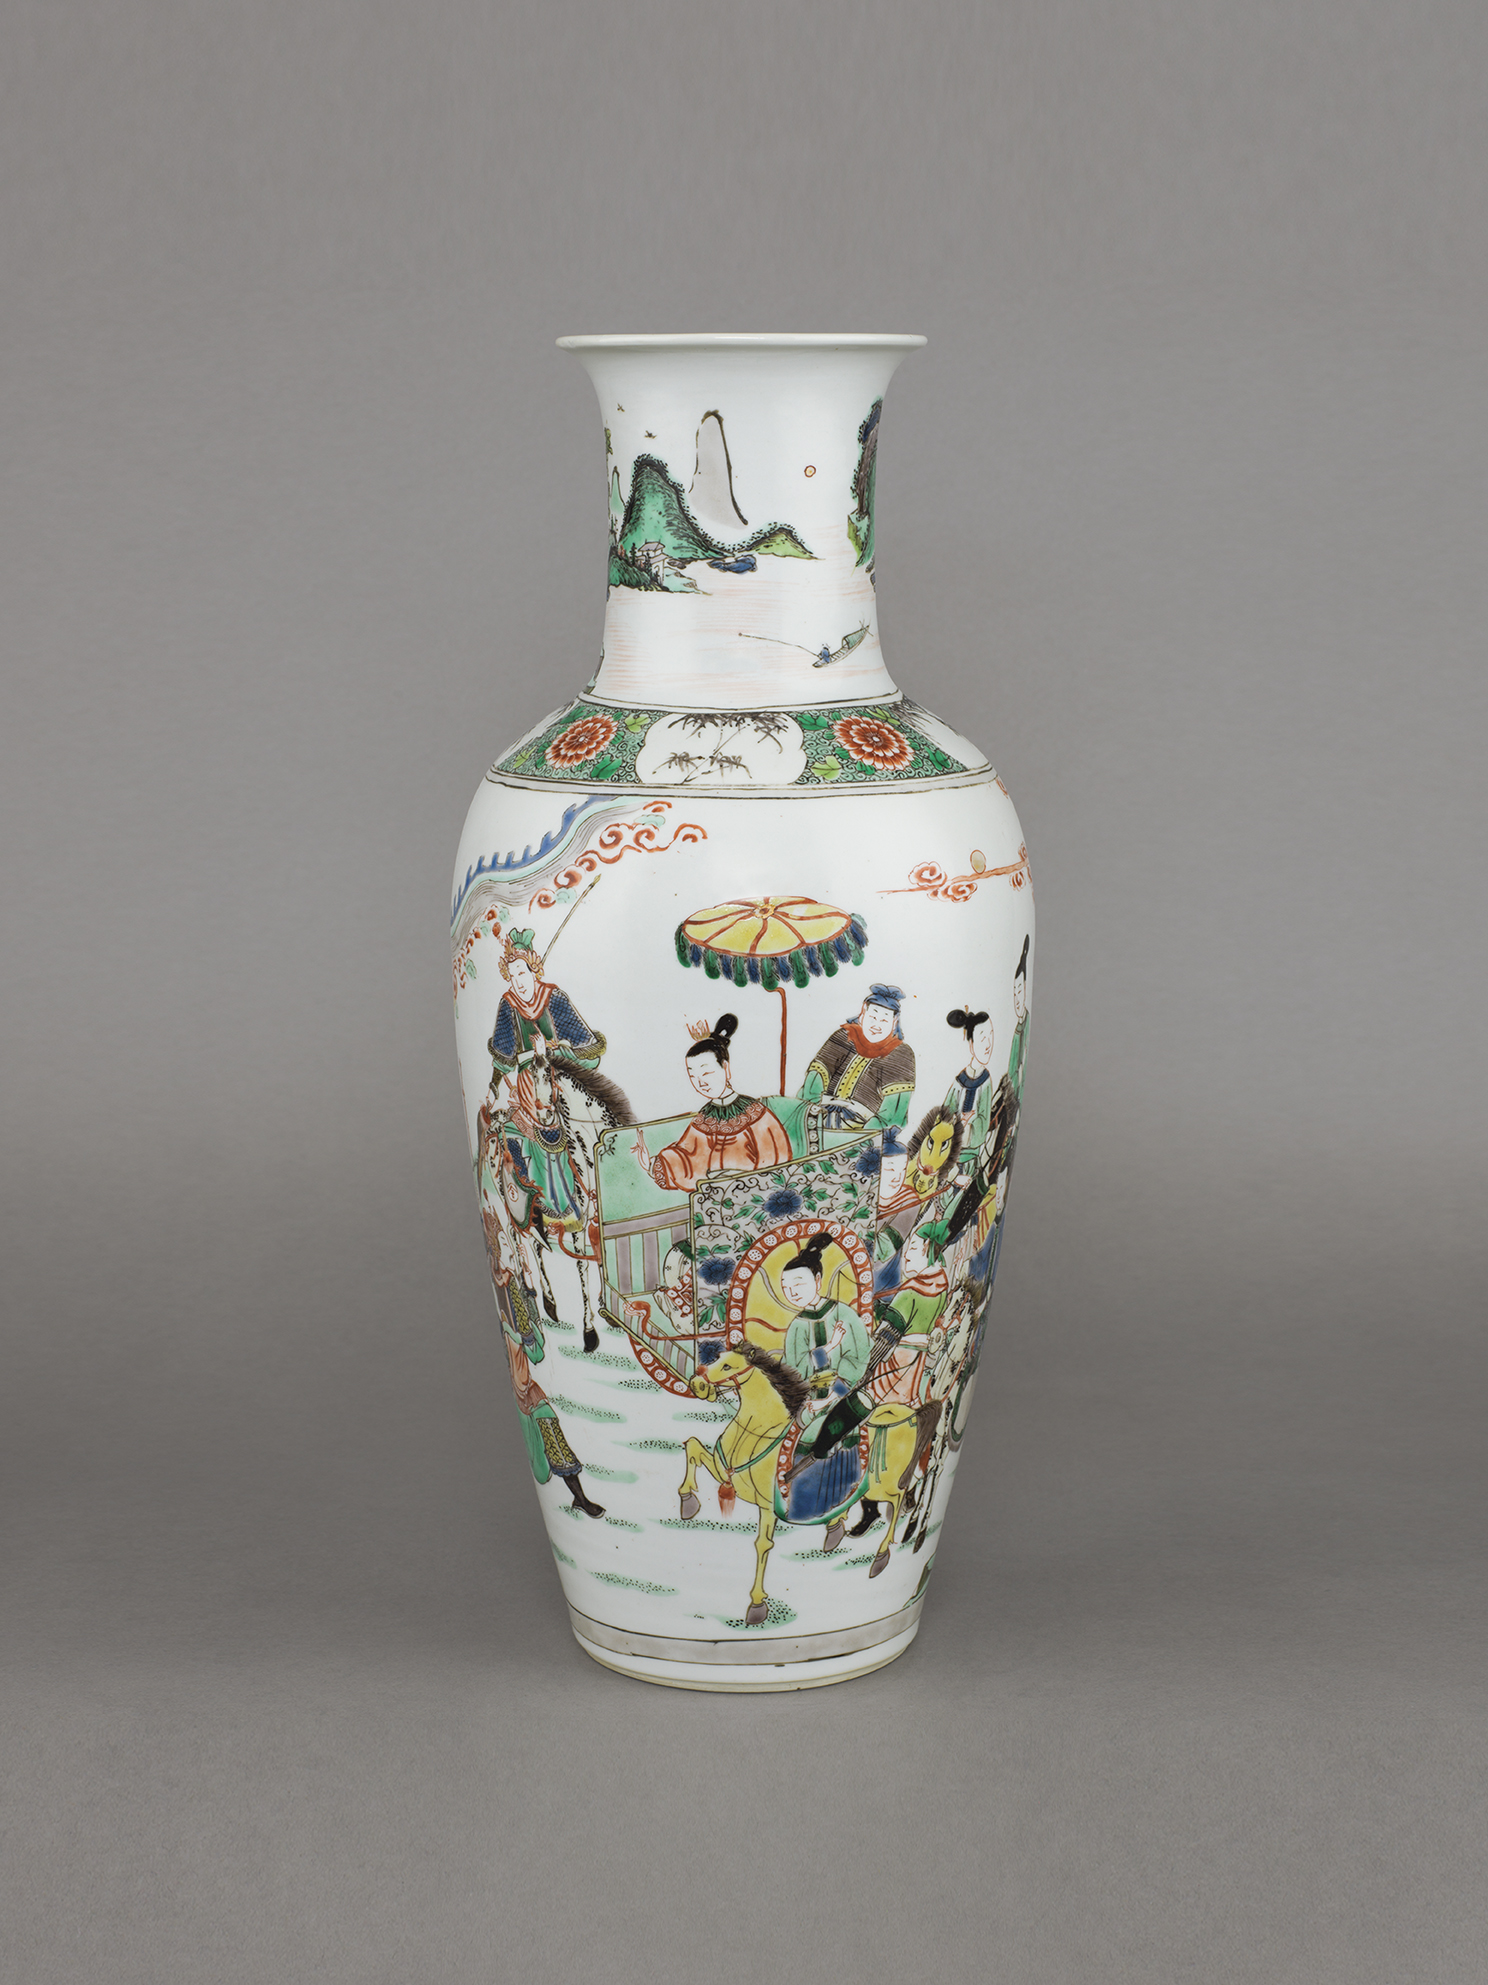 no. 10 - Chinese porcelain famille verte, wucai baluster vase of tapered form, with a lady in a sedan chair amongst all her attendants with a warrior and scholar, meeting two kneeling soldiers. 17 ¼ inches, 43.8 cm high. Kangxi, 1662-1722.